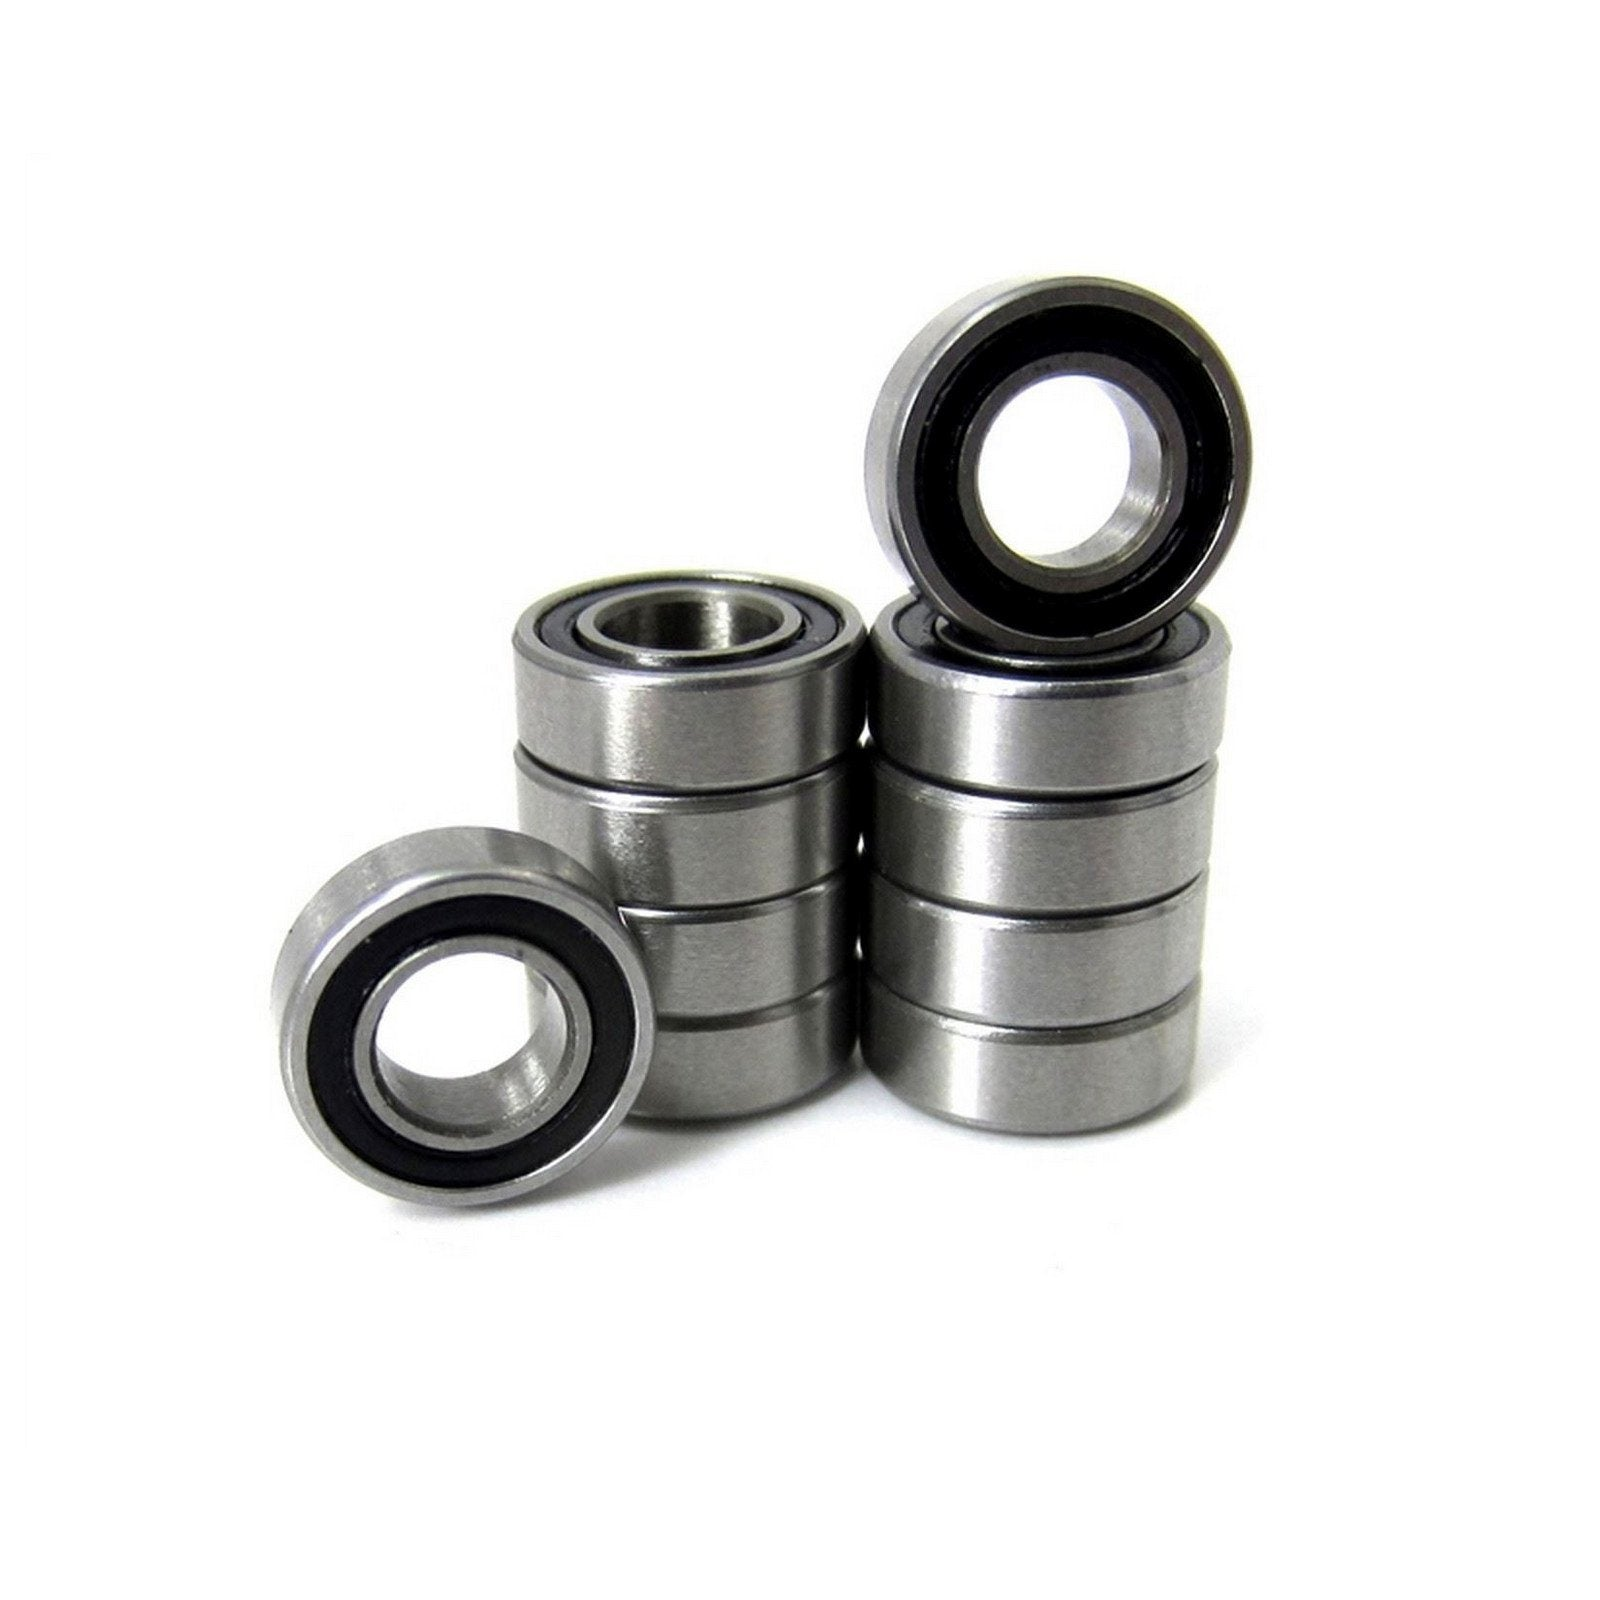 TRB RC 3/16x3/8x1/8 Precision Ball Bearings ABEC 3 Rubber Sealed (10) - trb-rc-bearings